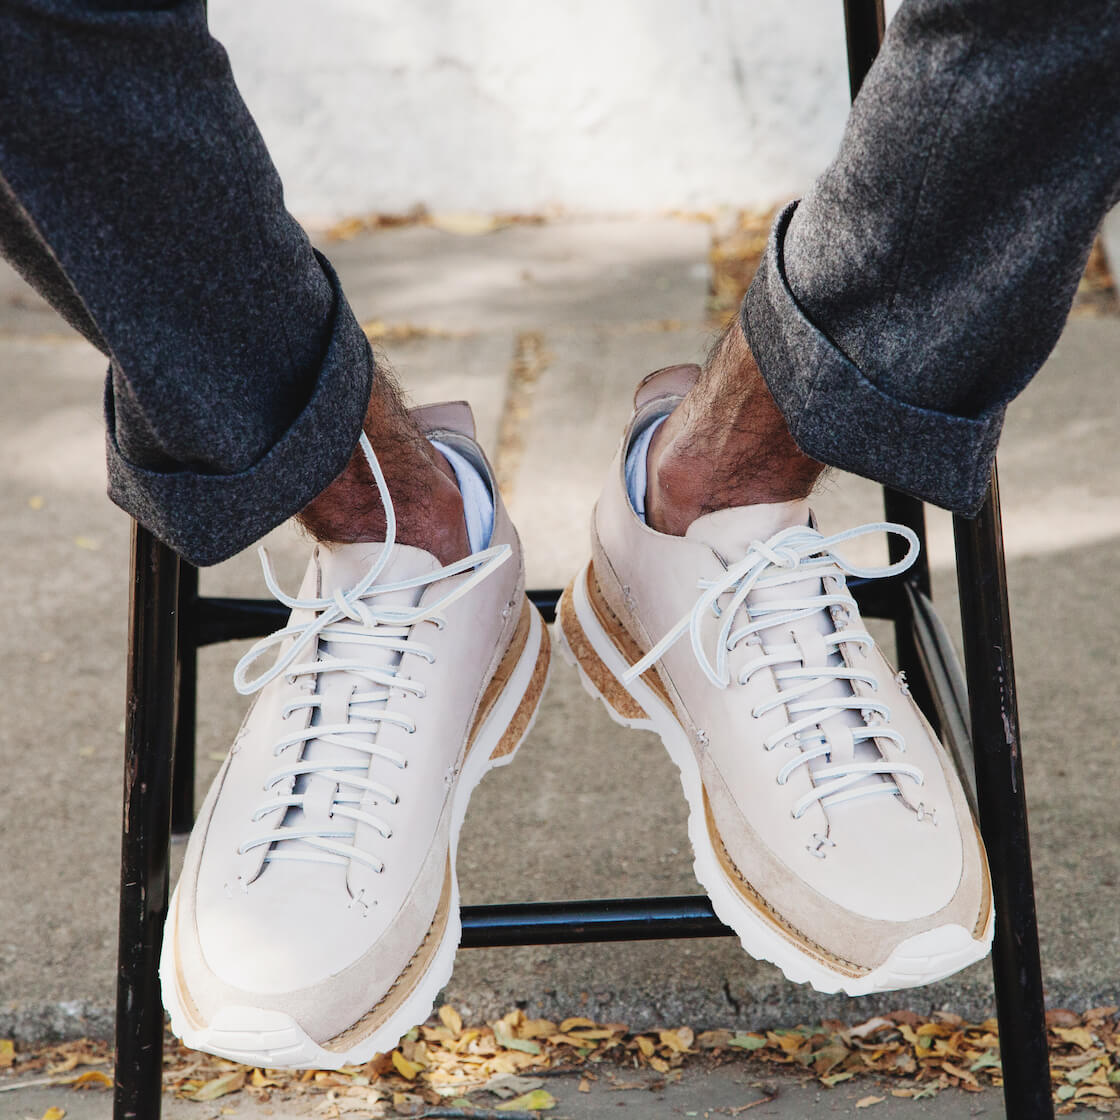 Feit lugged runner shoes